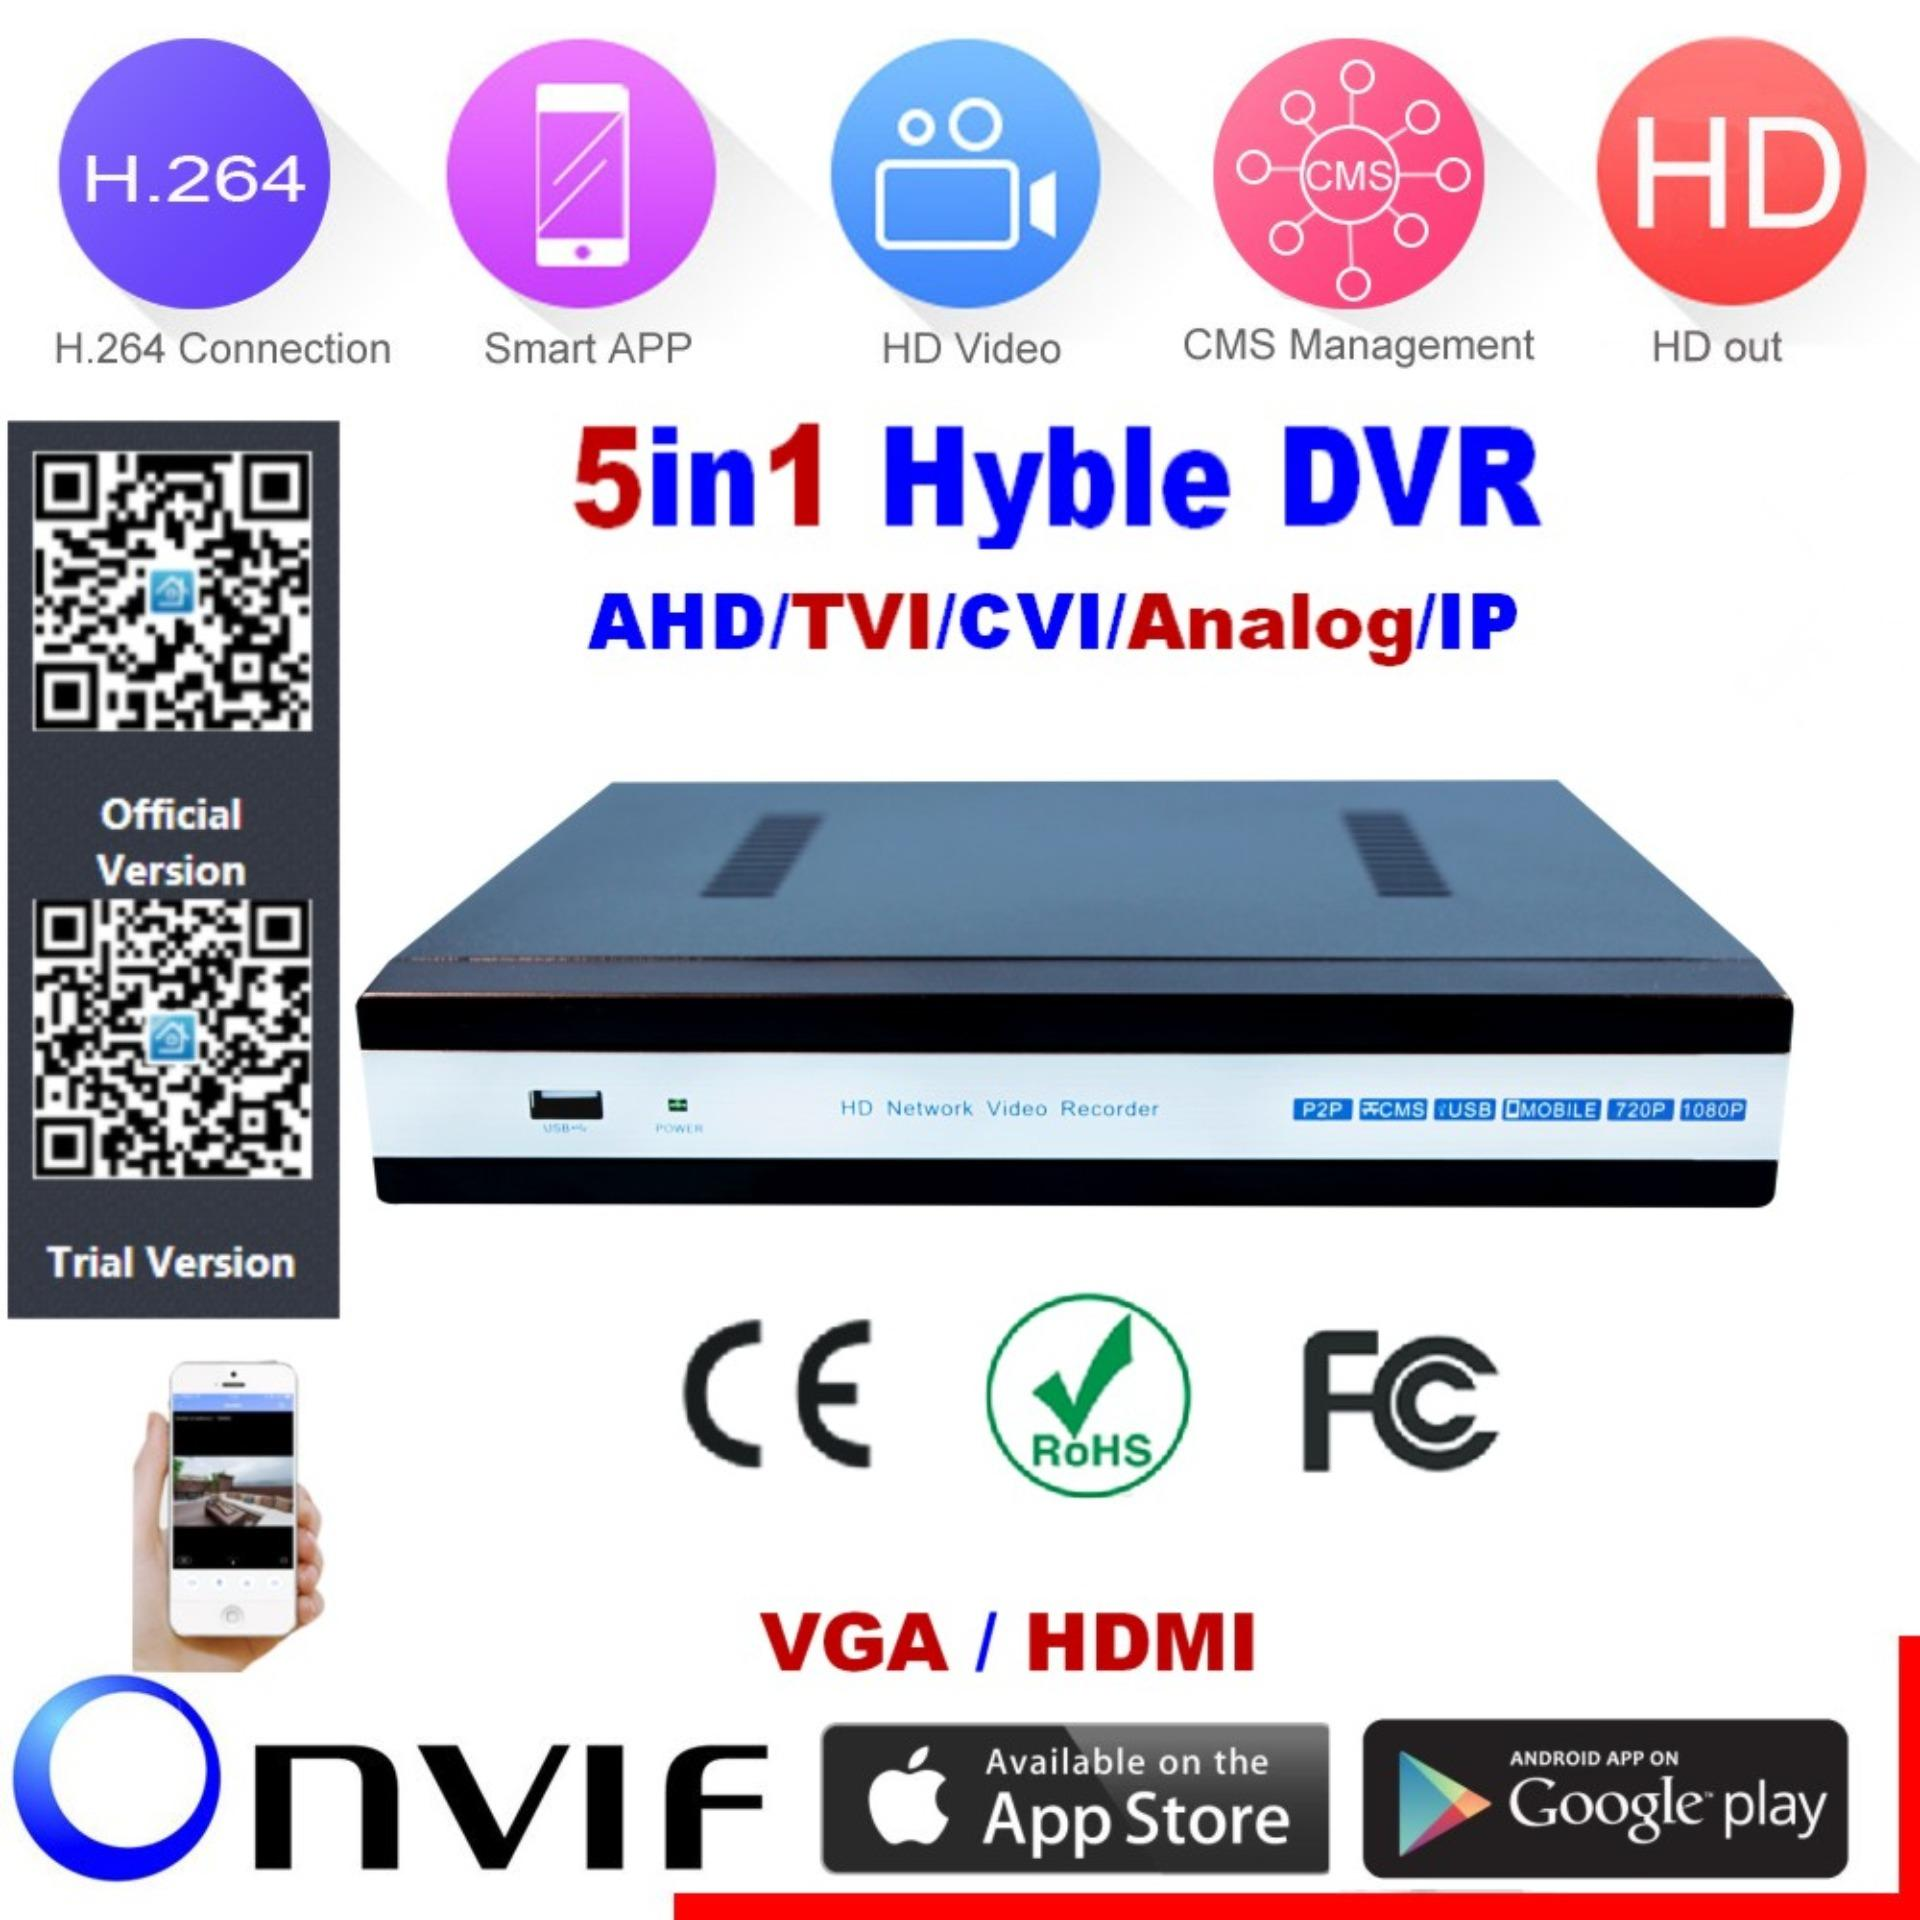 HanJia H.264 8Channel Full 1080N/720P@25fps 5in1 Hybrid DVR(AHD/TVI/CVI/analog/IP) HDMI/VGA P2P Cloud support 1 hard disk interface Android/iOS APP Free CMS Browser View Motion Detection Email Alarm PTZ for CCTV Security Camera Surveillance System